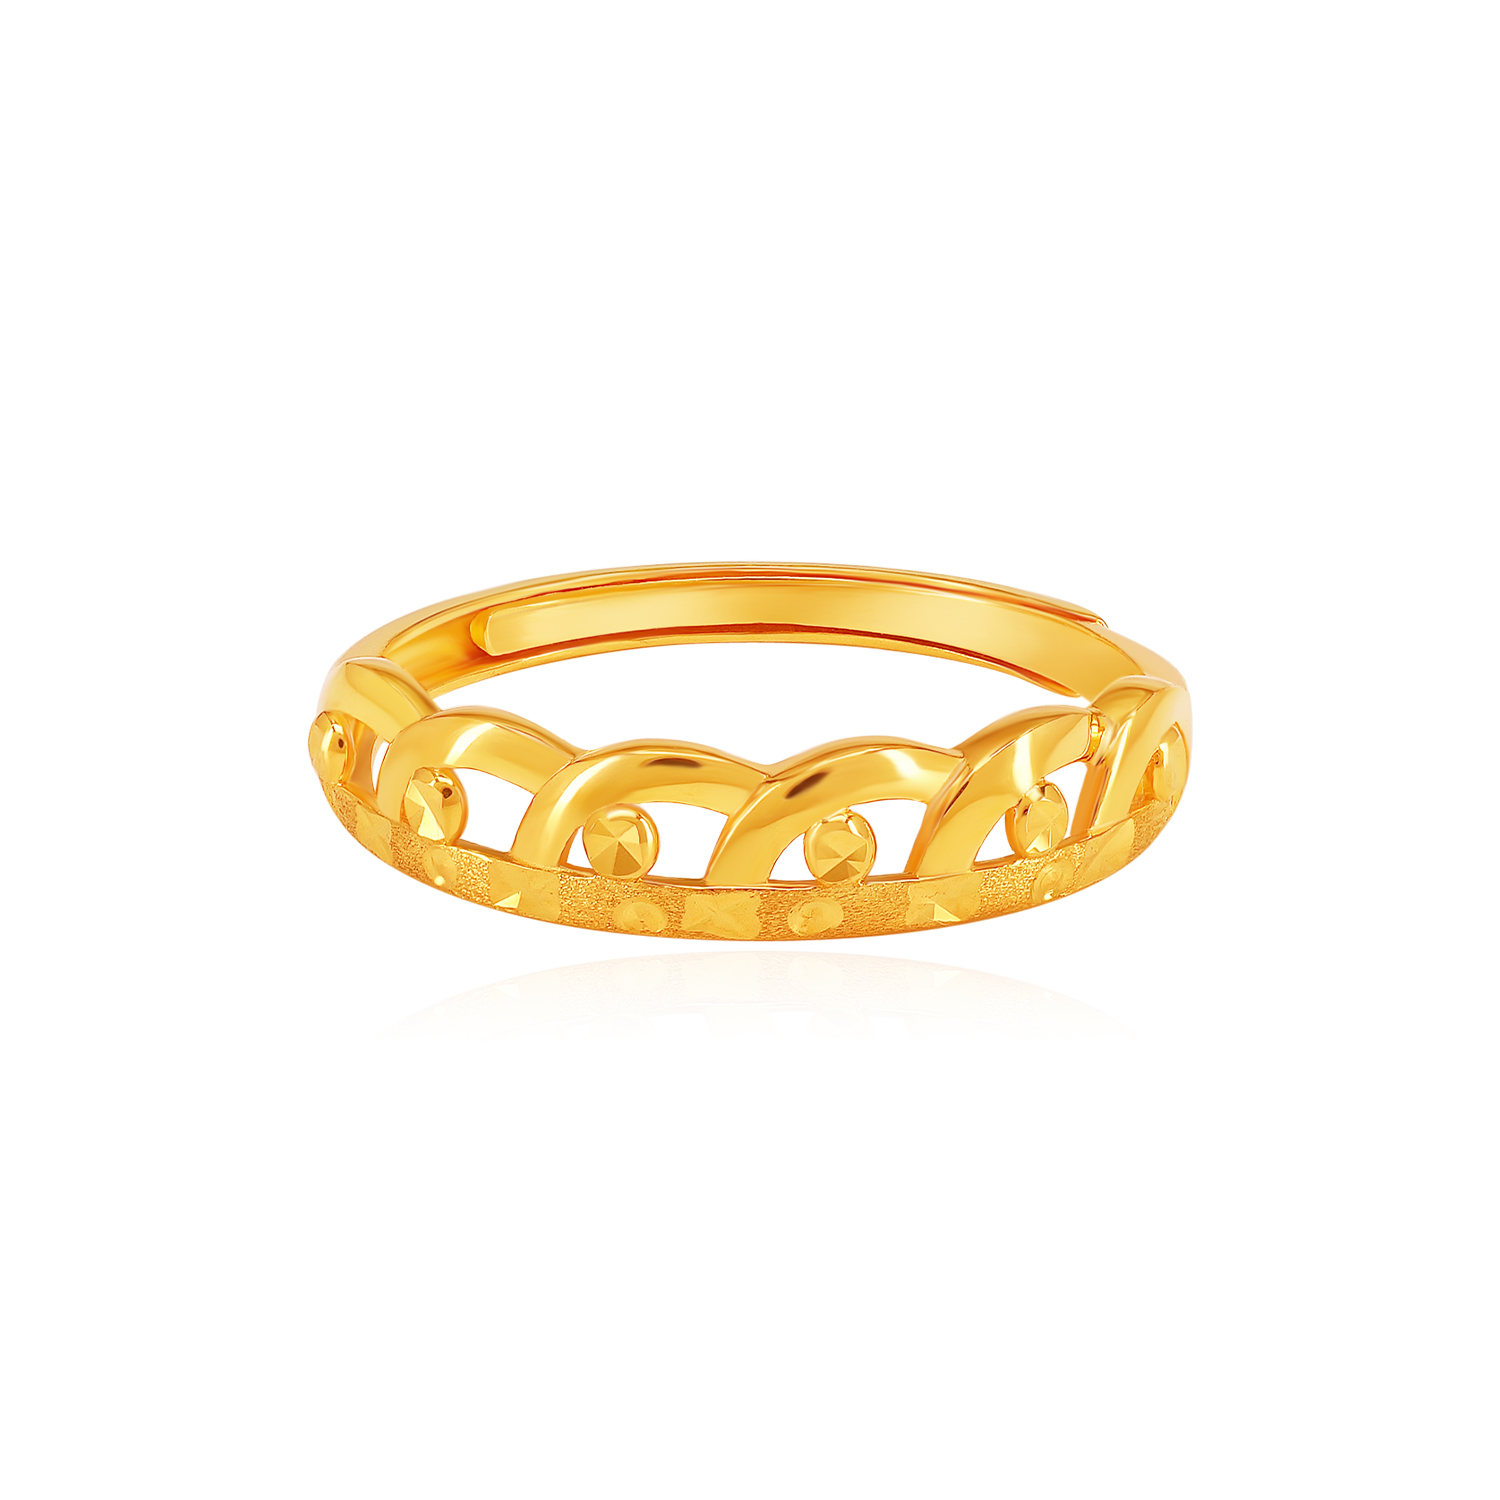 SK 916 Crown It Gold Ring